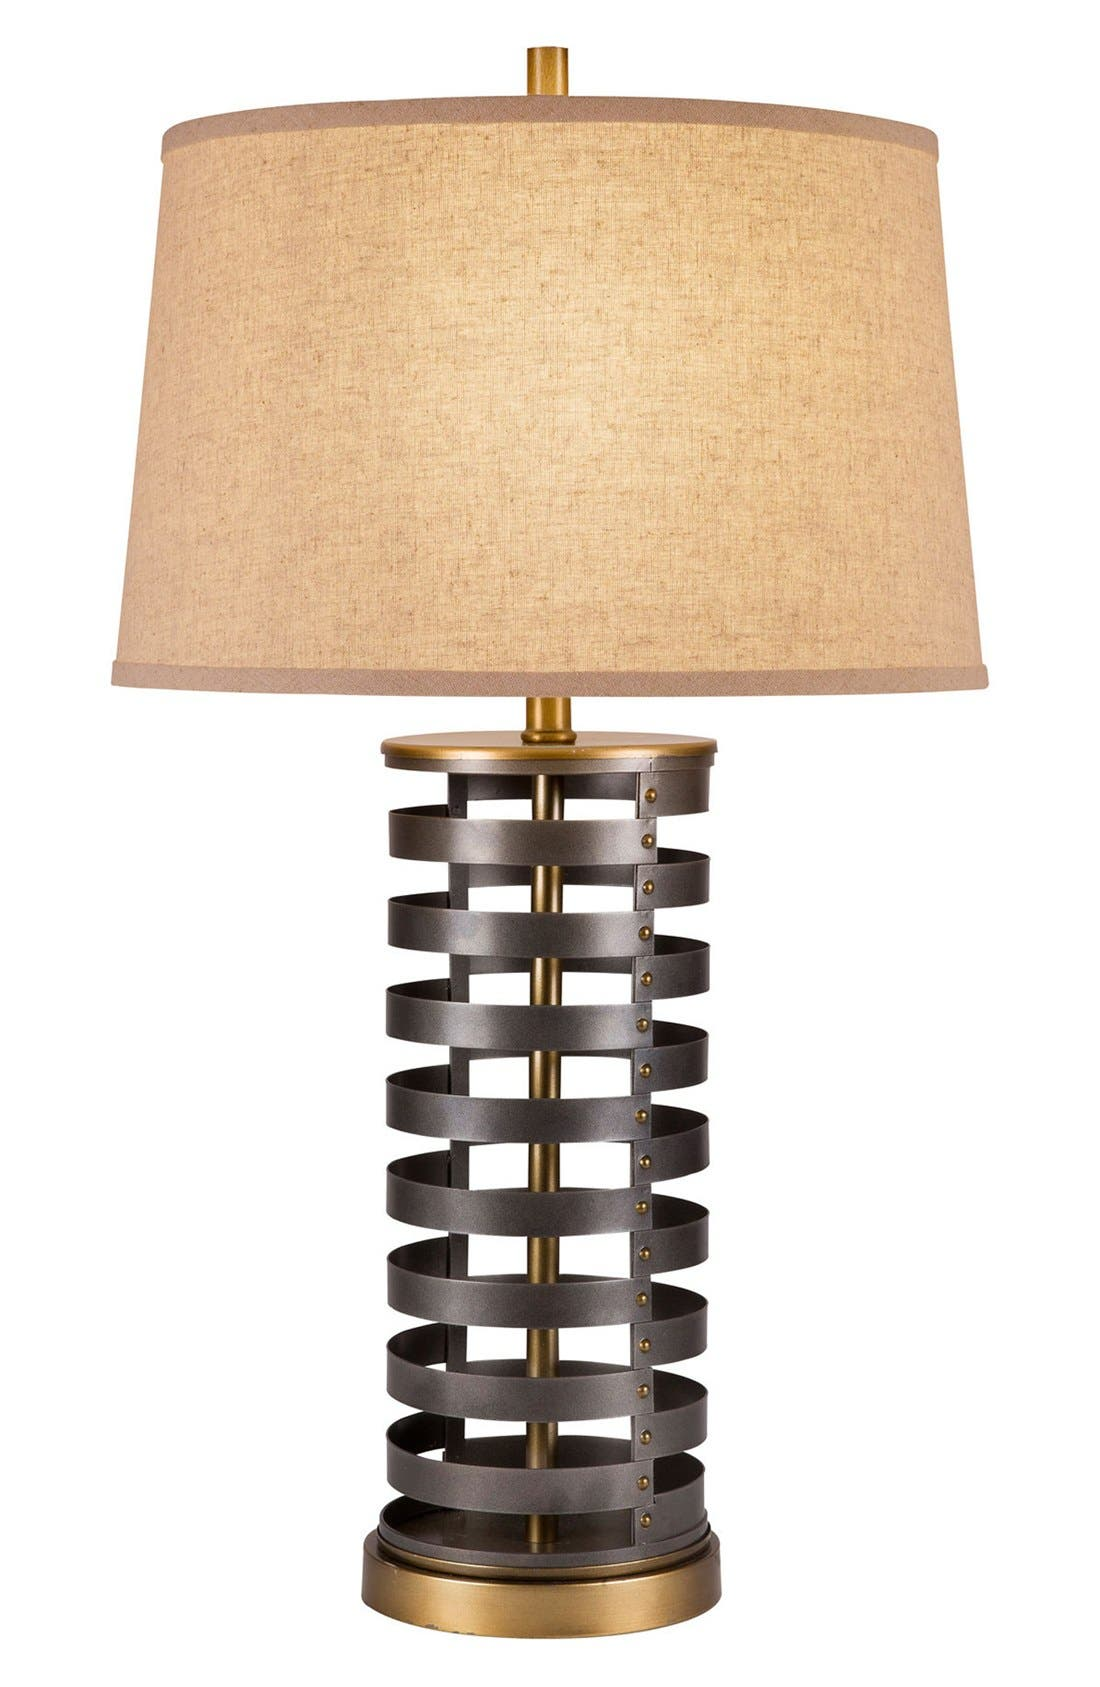 Alternate Image 1 Selected - JAlexander 'Stacked Disc' Table Lamp